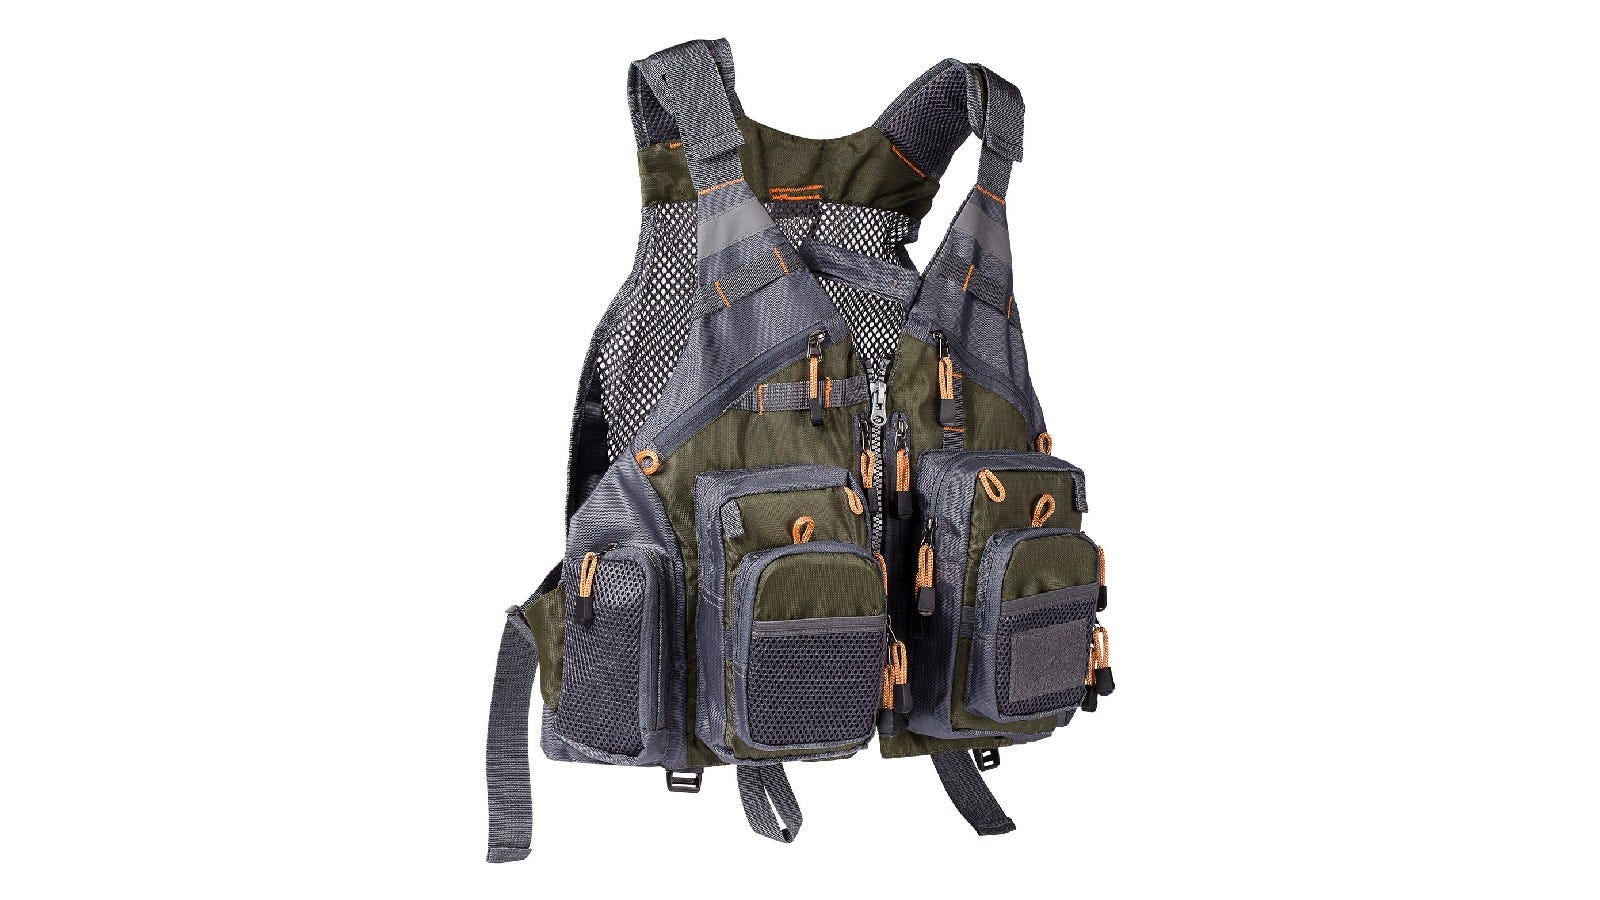 A fishing life vest with padded air mesh shoulder straps and several pockets